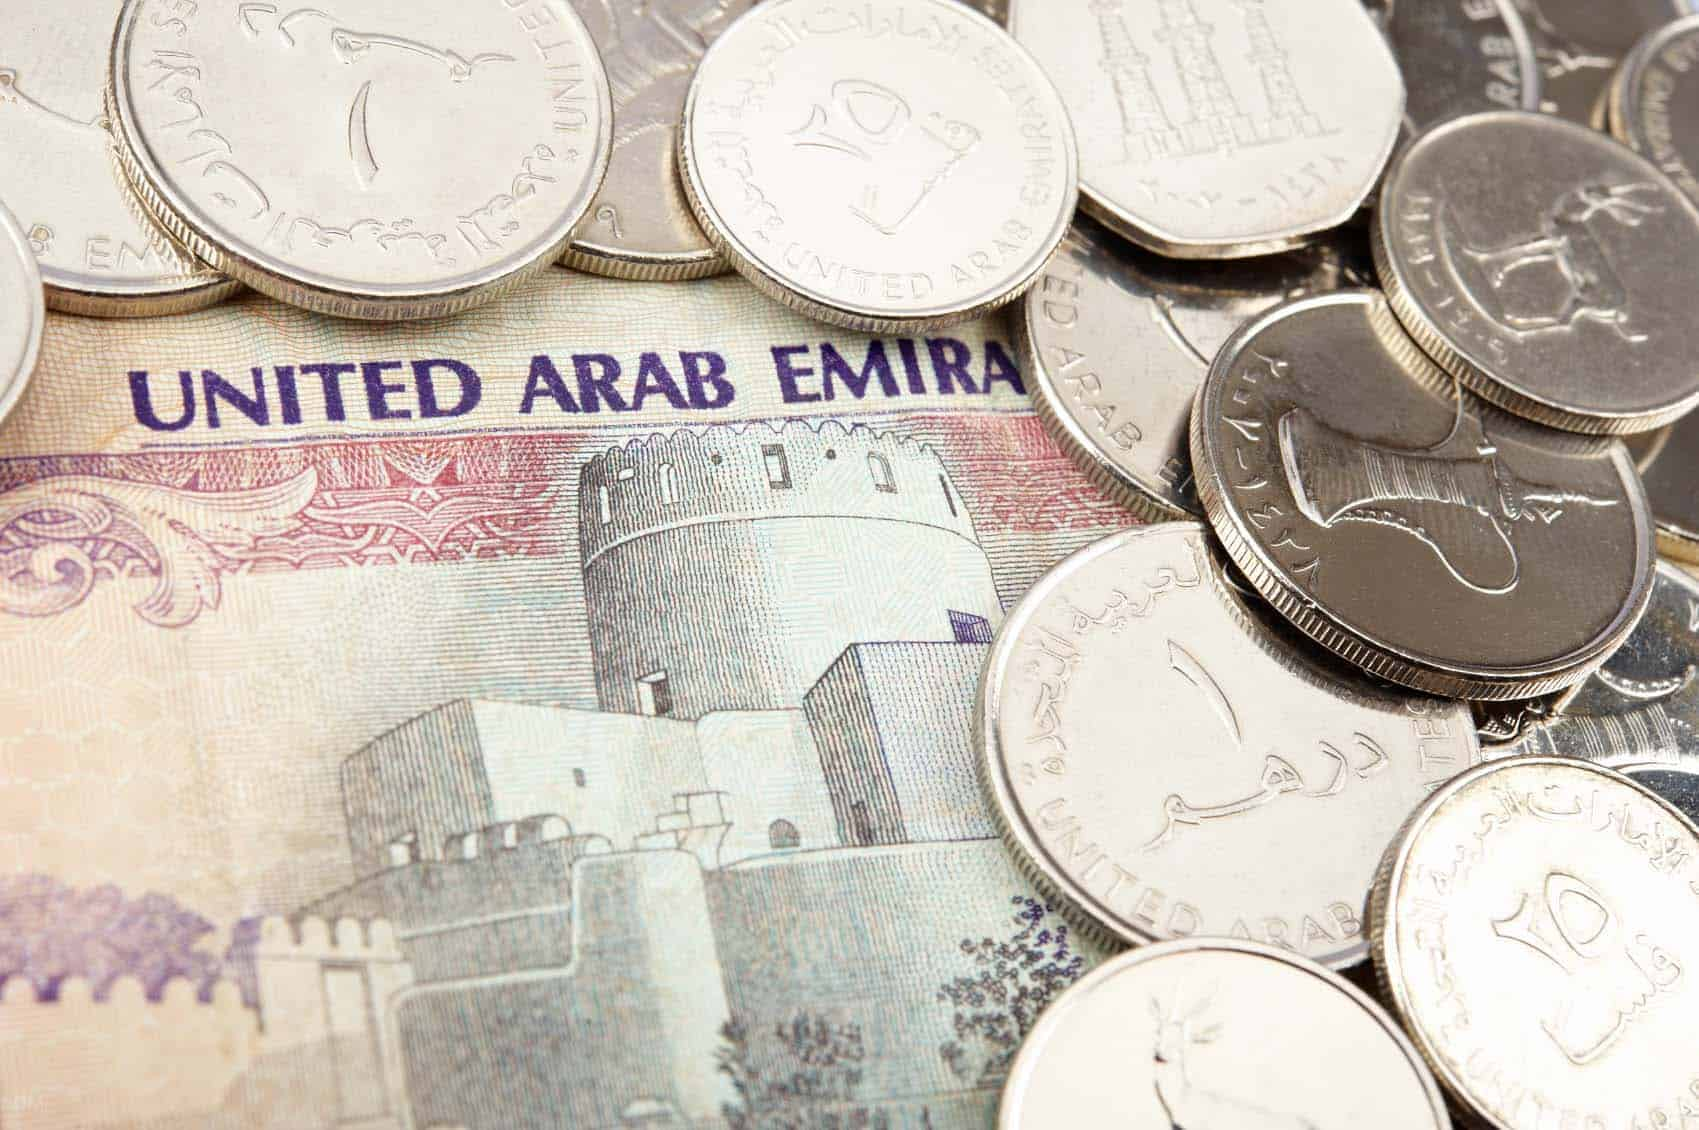 Dubai Currency, Banks and Money